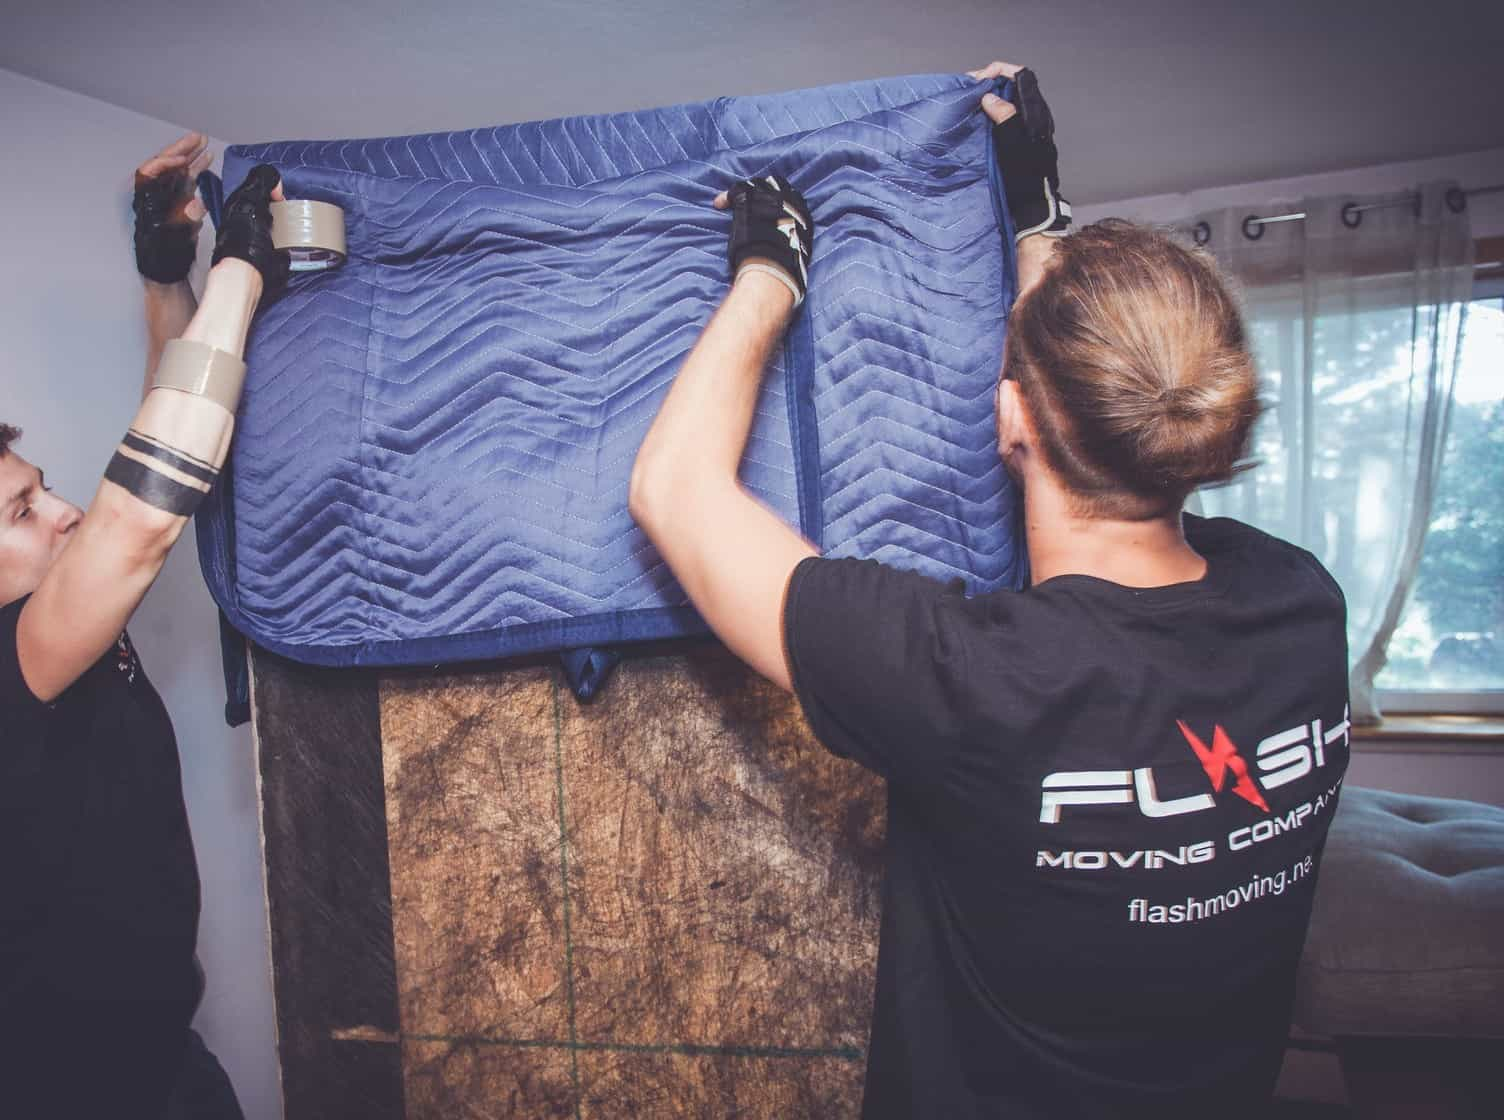 This image shows Flash Moving crew werapping a piece of furniture for a local move.